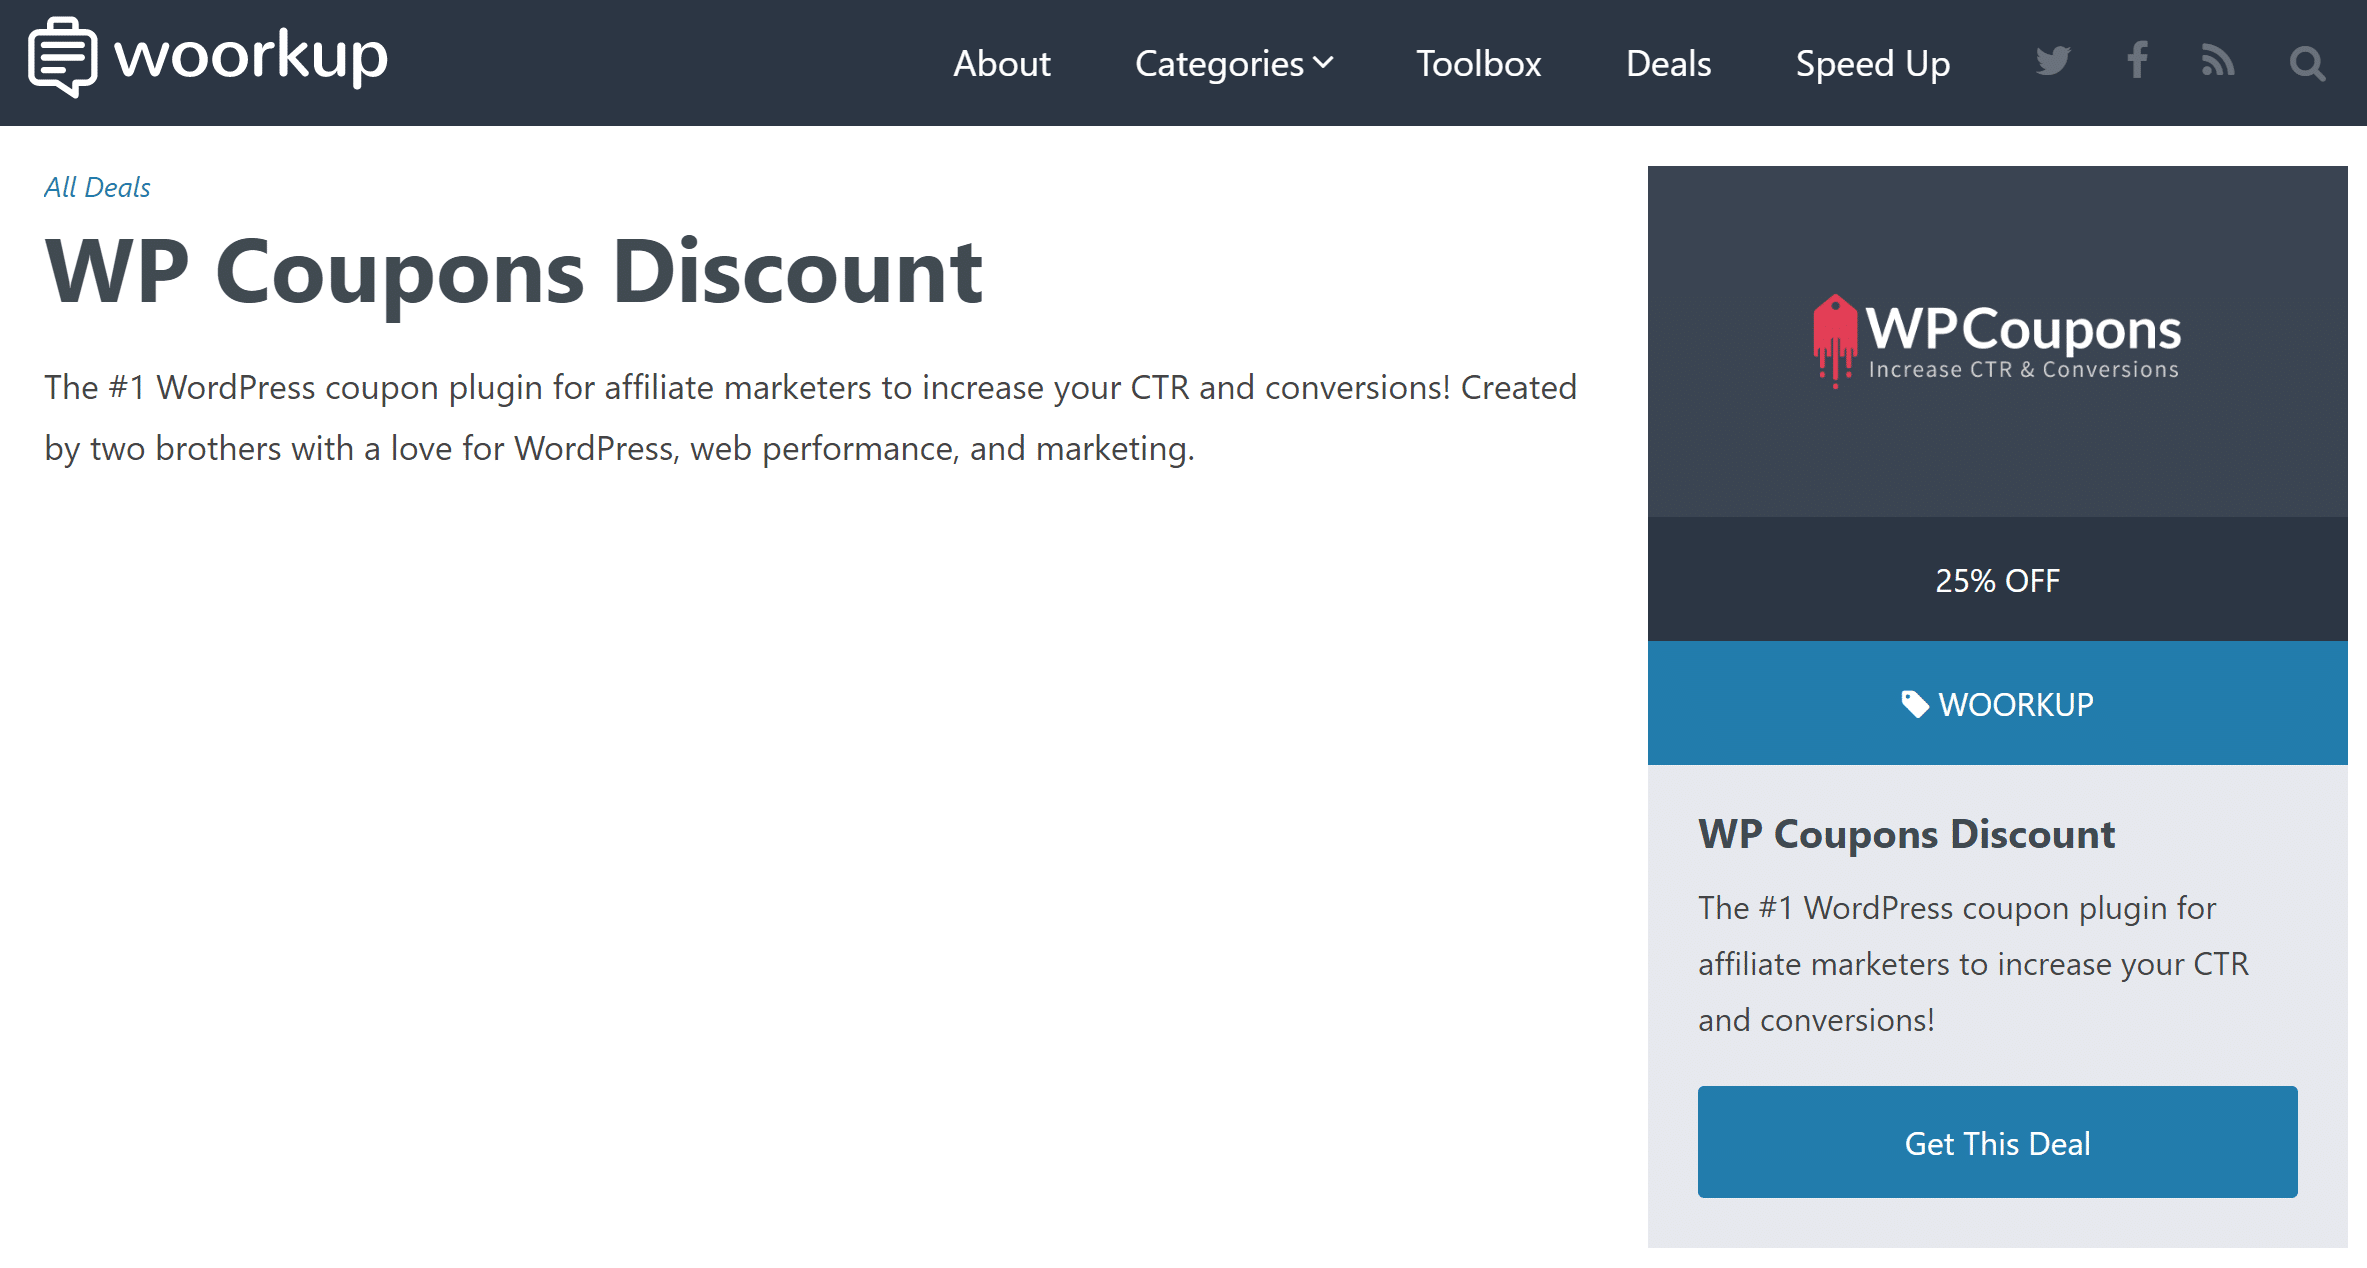 wp coupons layout right